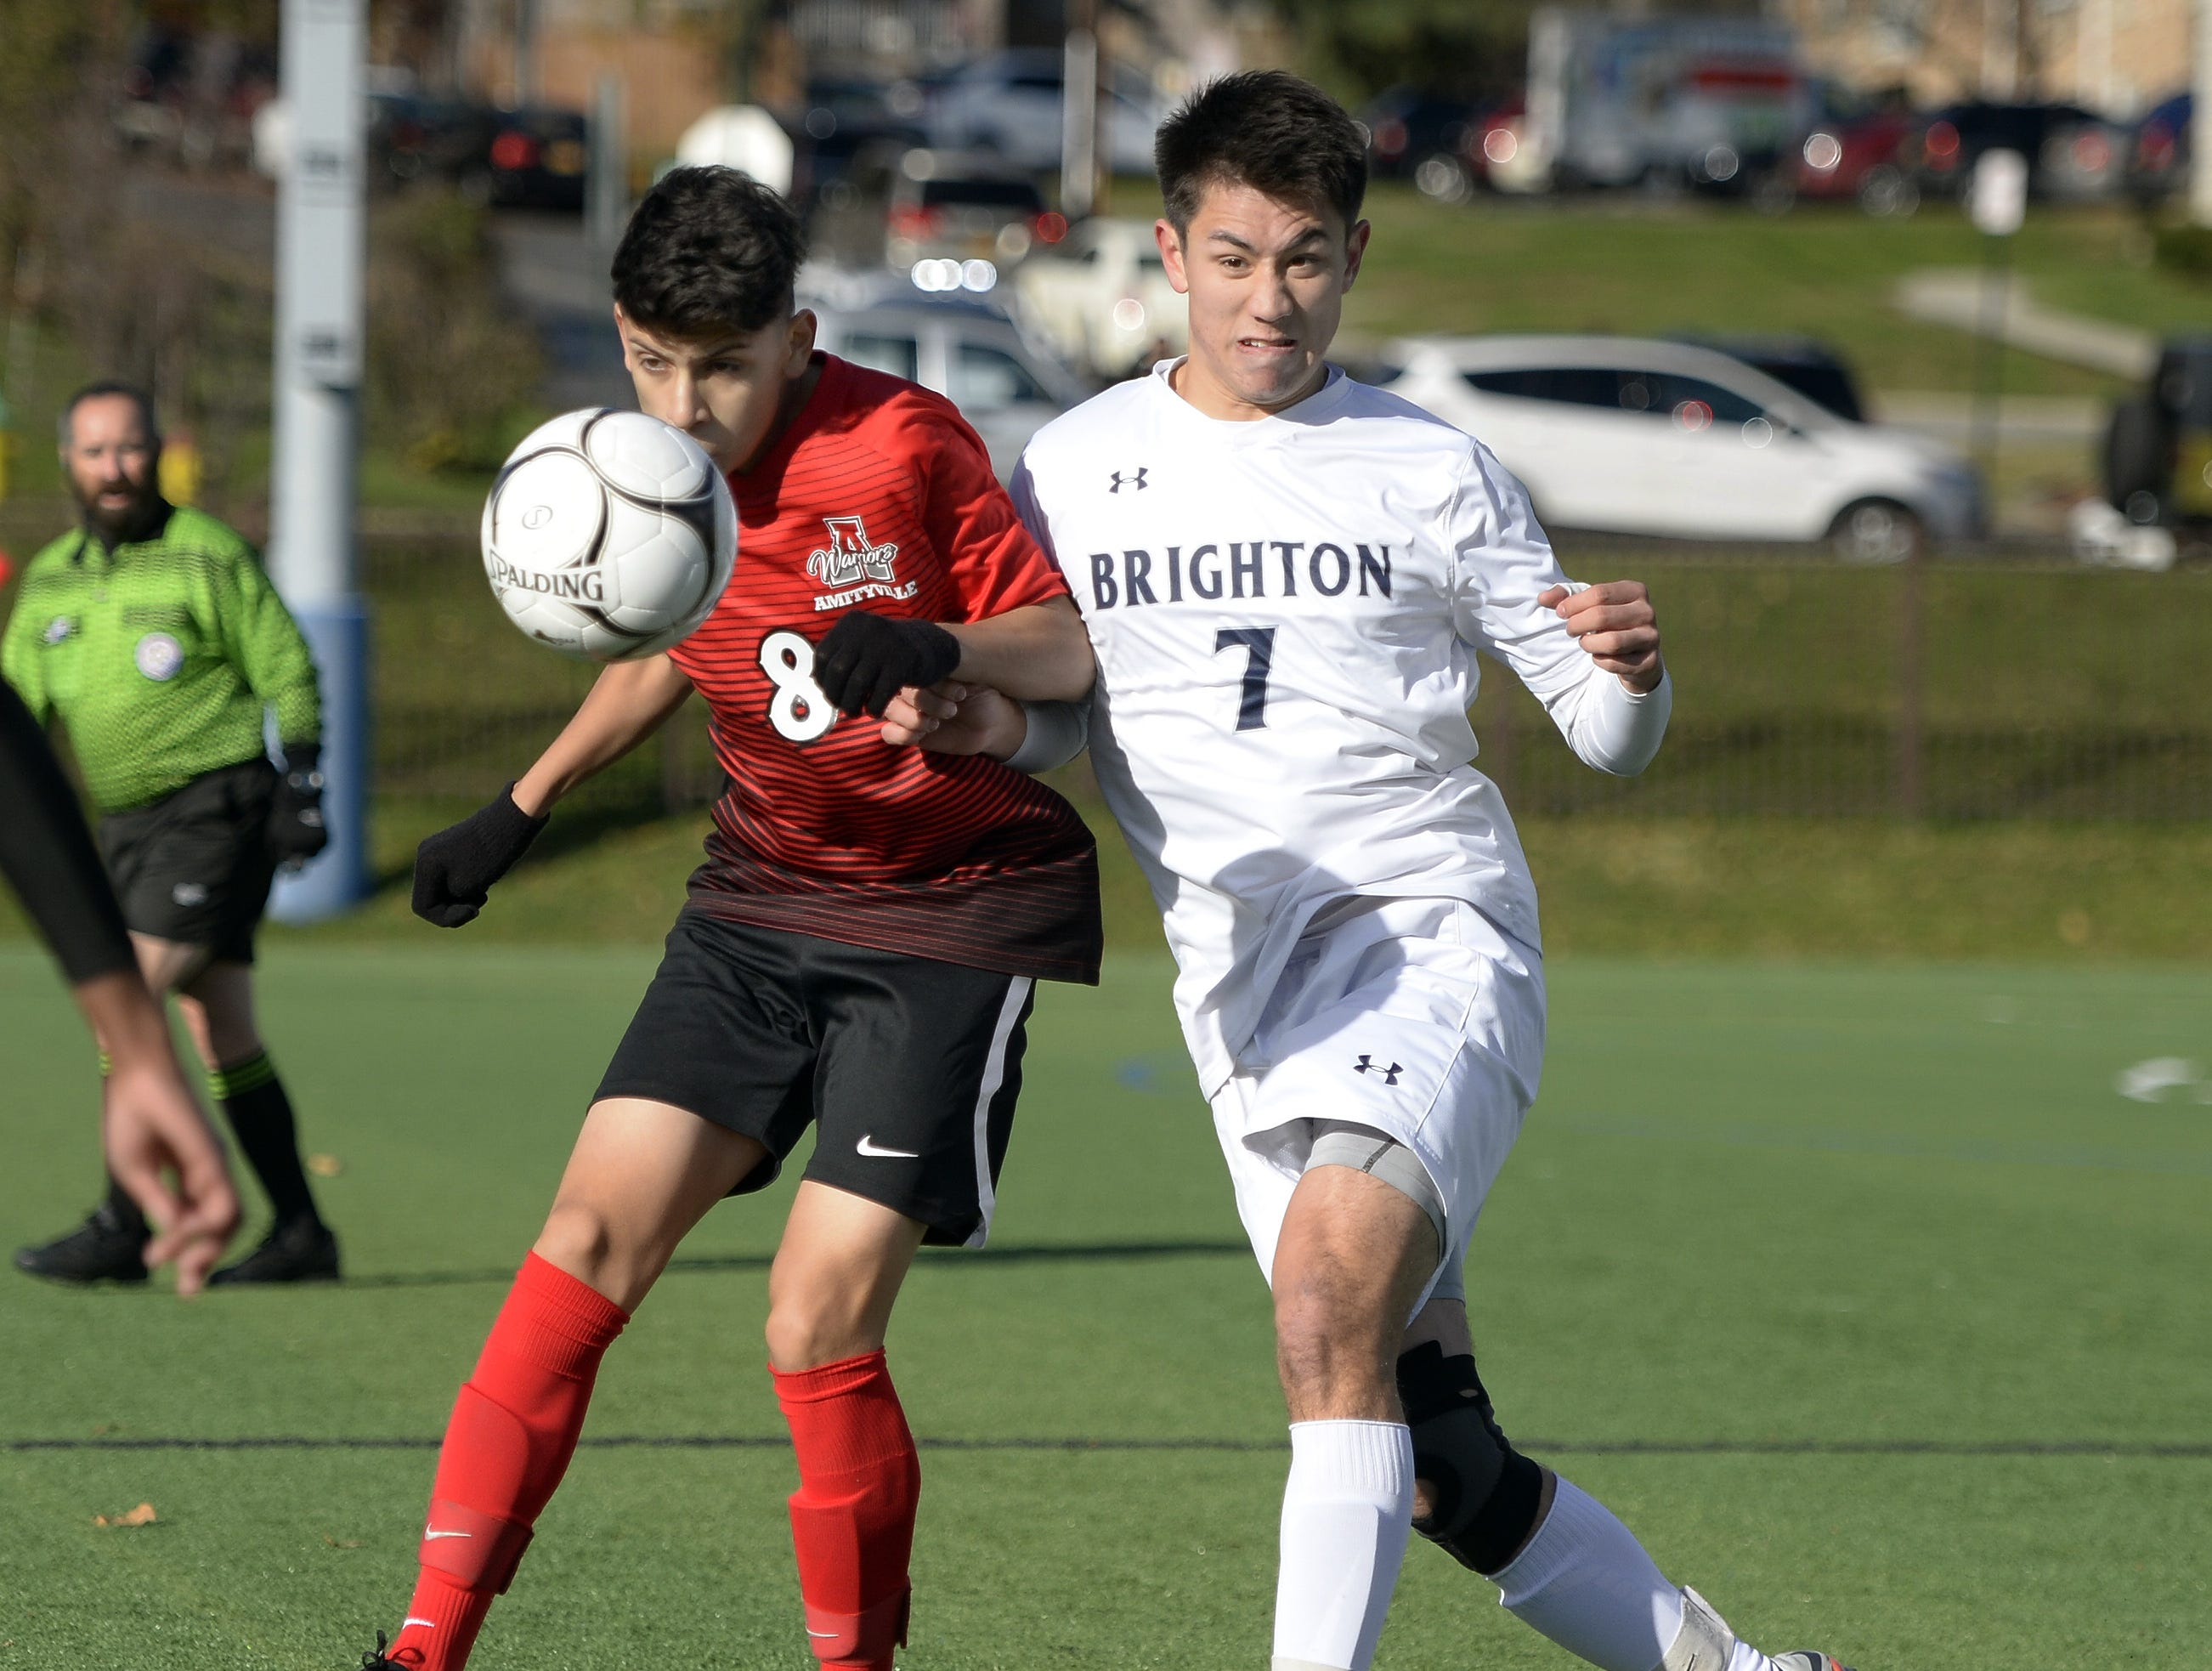 Brighton's Gabriel Barraclough-Tan, right, clears the ball past Amityville's Juan Ponce during a Class A semifinal at the NYSPHSAA Boys Soccer Championships in Newburgh, N.Y., Saturday, Nov. 10, 2018.